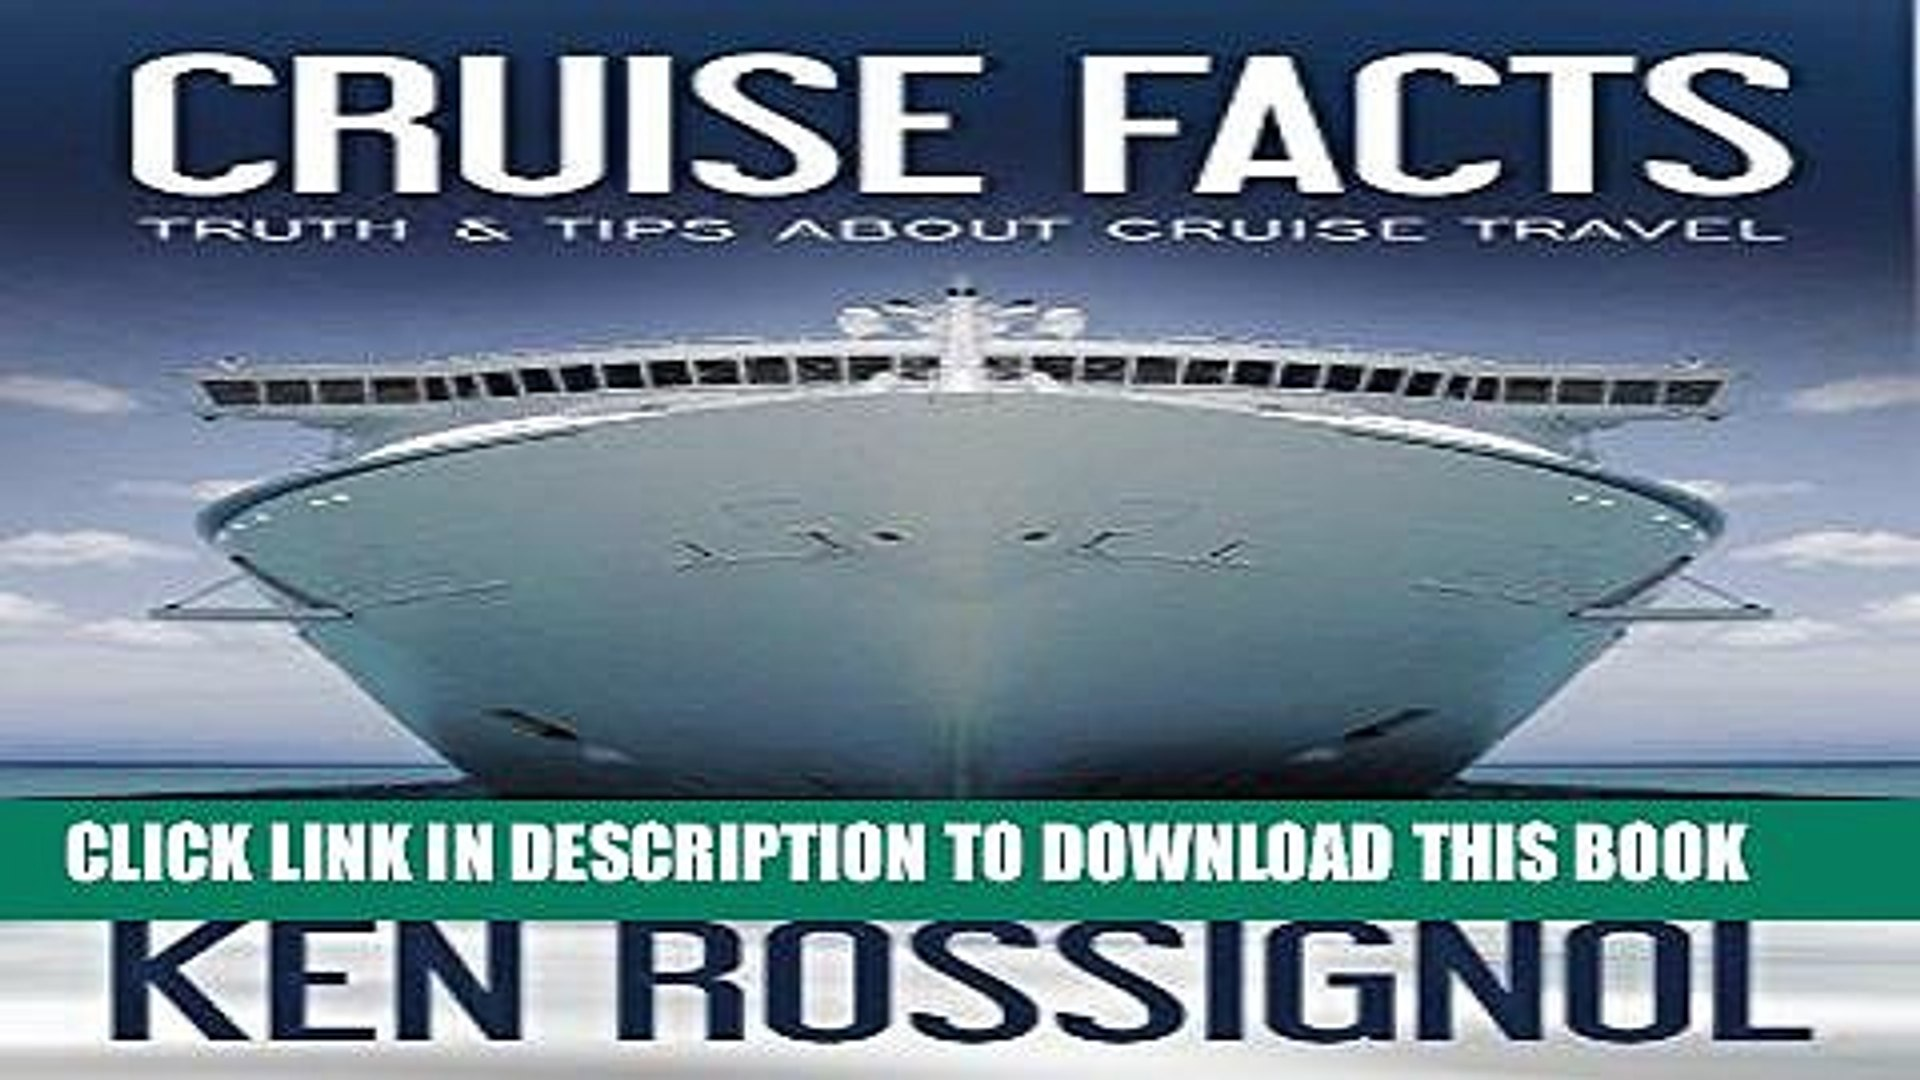 Ebook CRUISE FACTS - TRUTH   TIPS ABOUT CRUISE TRAVEL (Traveling Cheapskate Series Book 2) Free